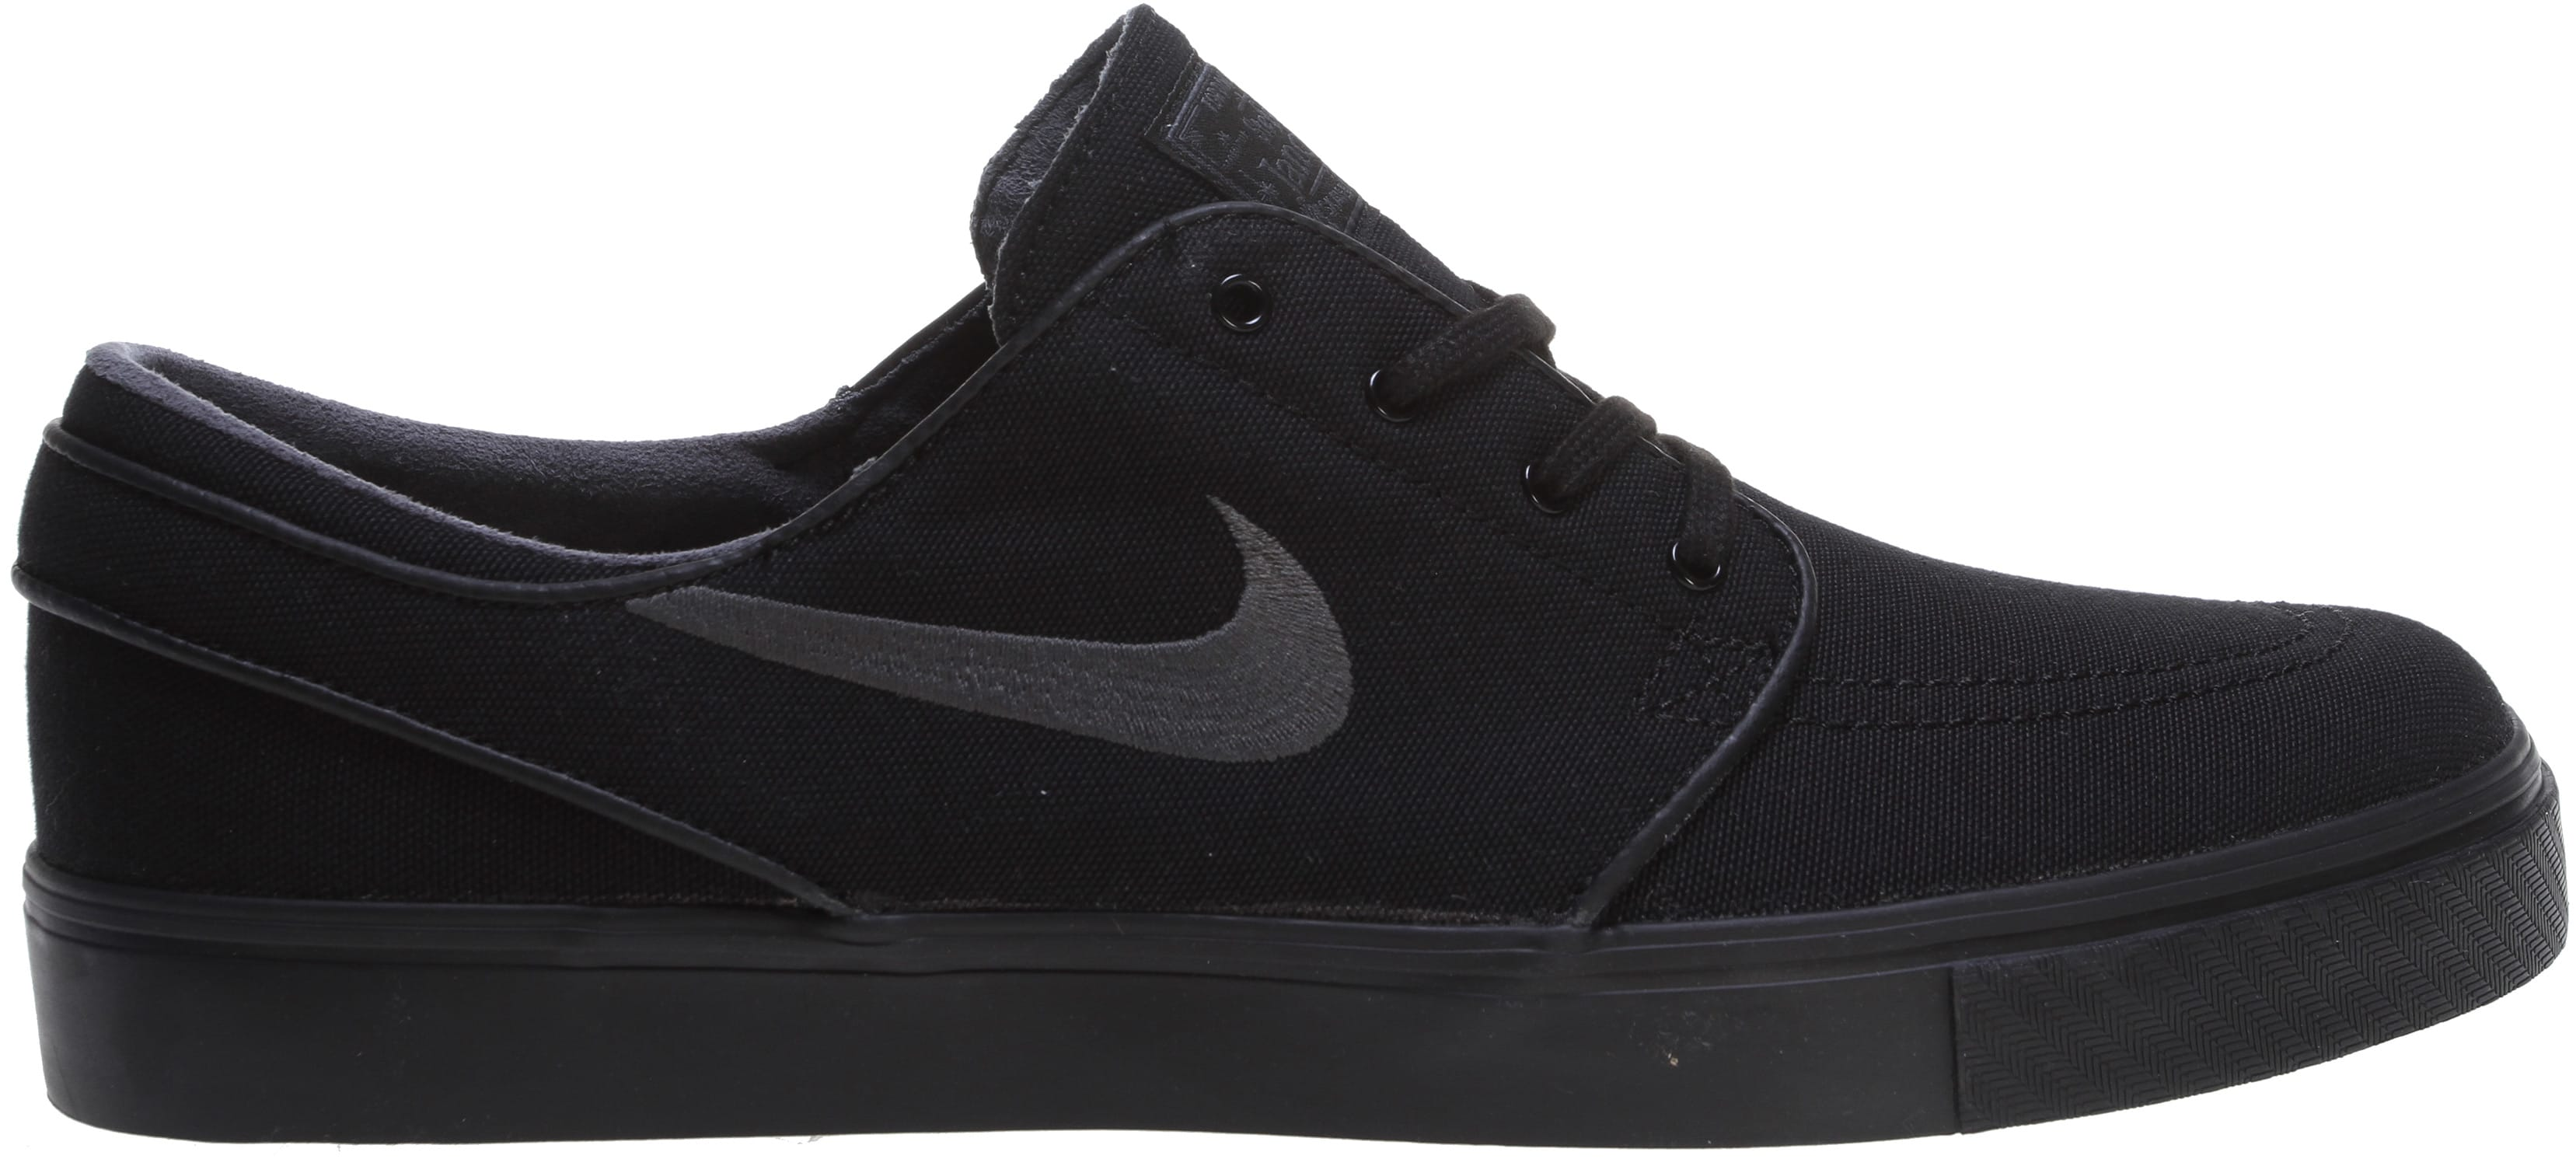 quality design 40274 d61da nike-zm-stefan-janoski-canvas-shoes-blk-anthracite-15.jpg